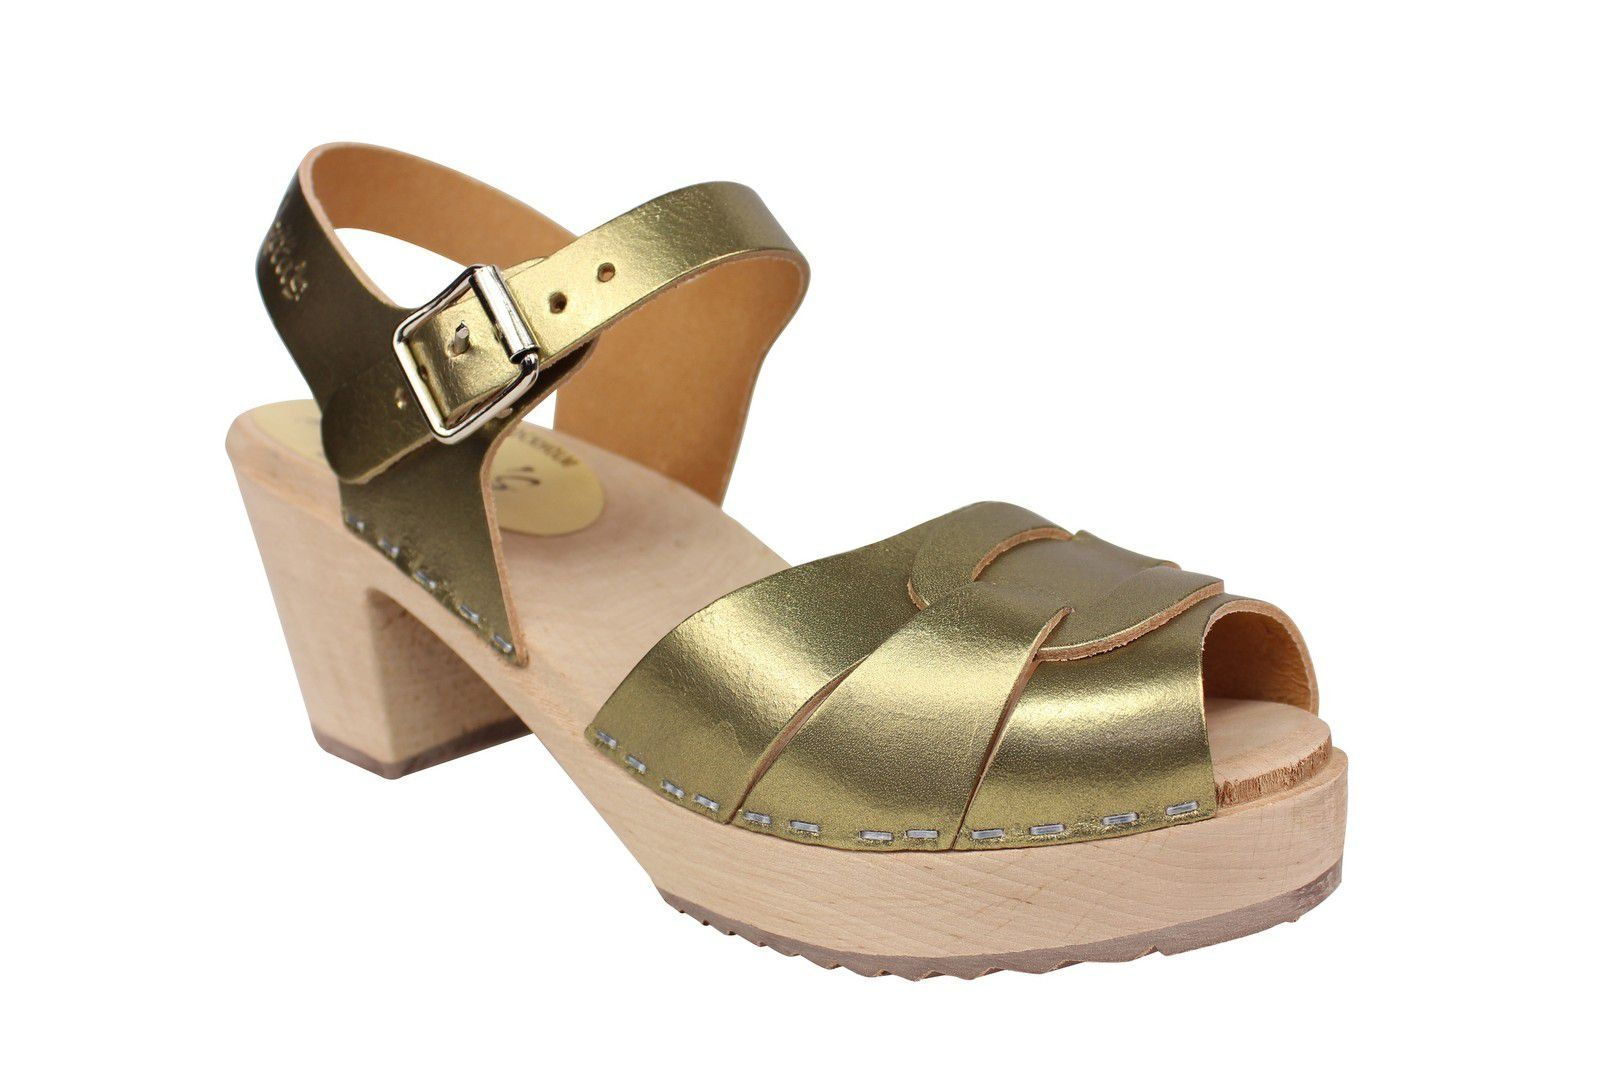 Lotta from Stockholm Peep Toe Antique Gold Main